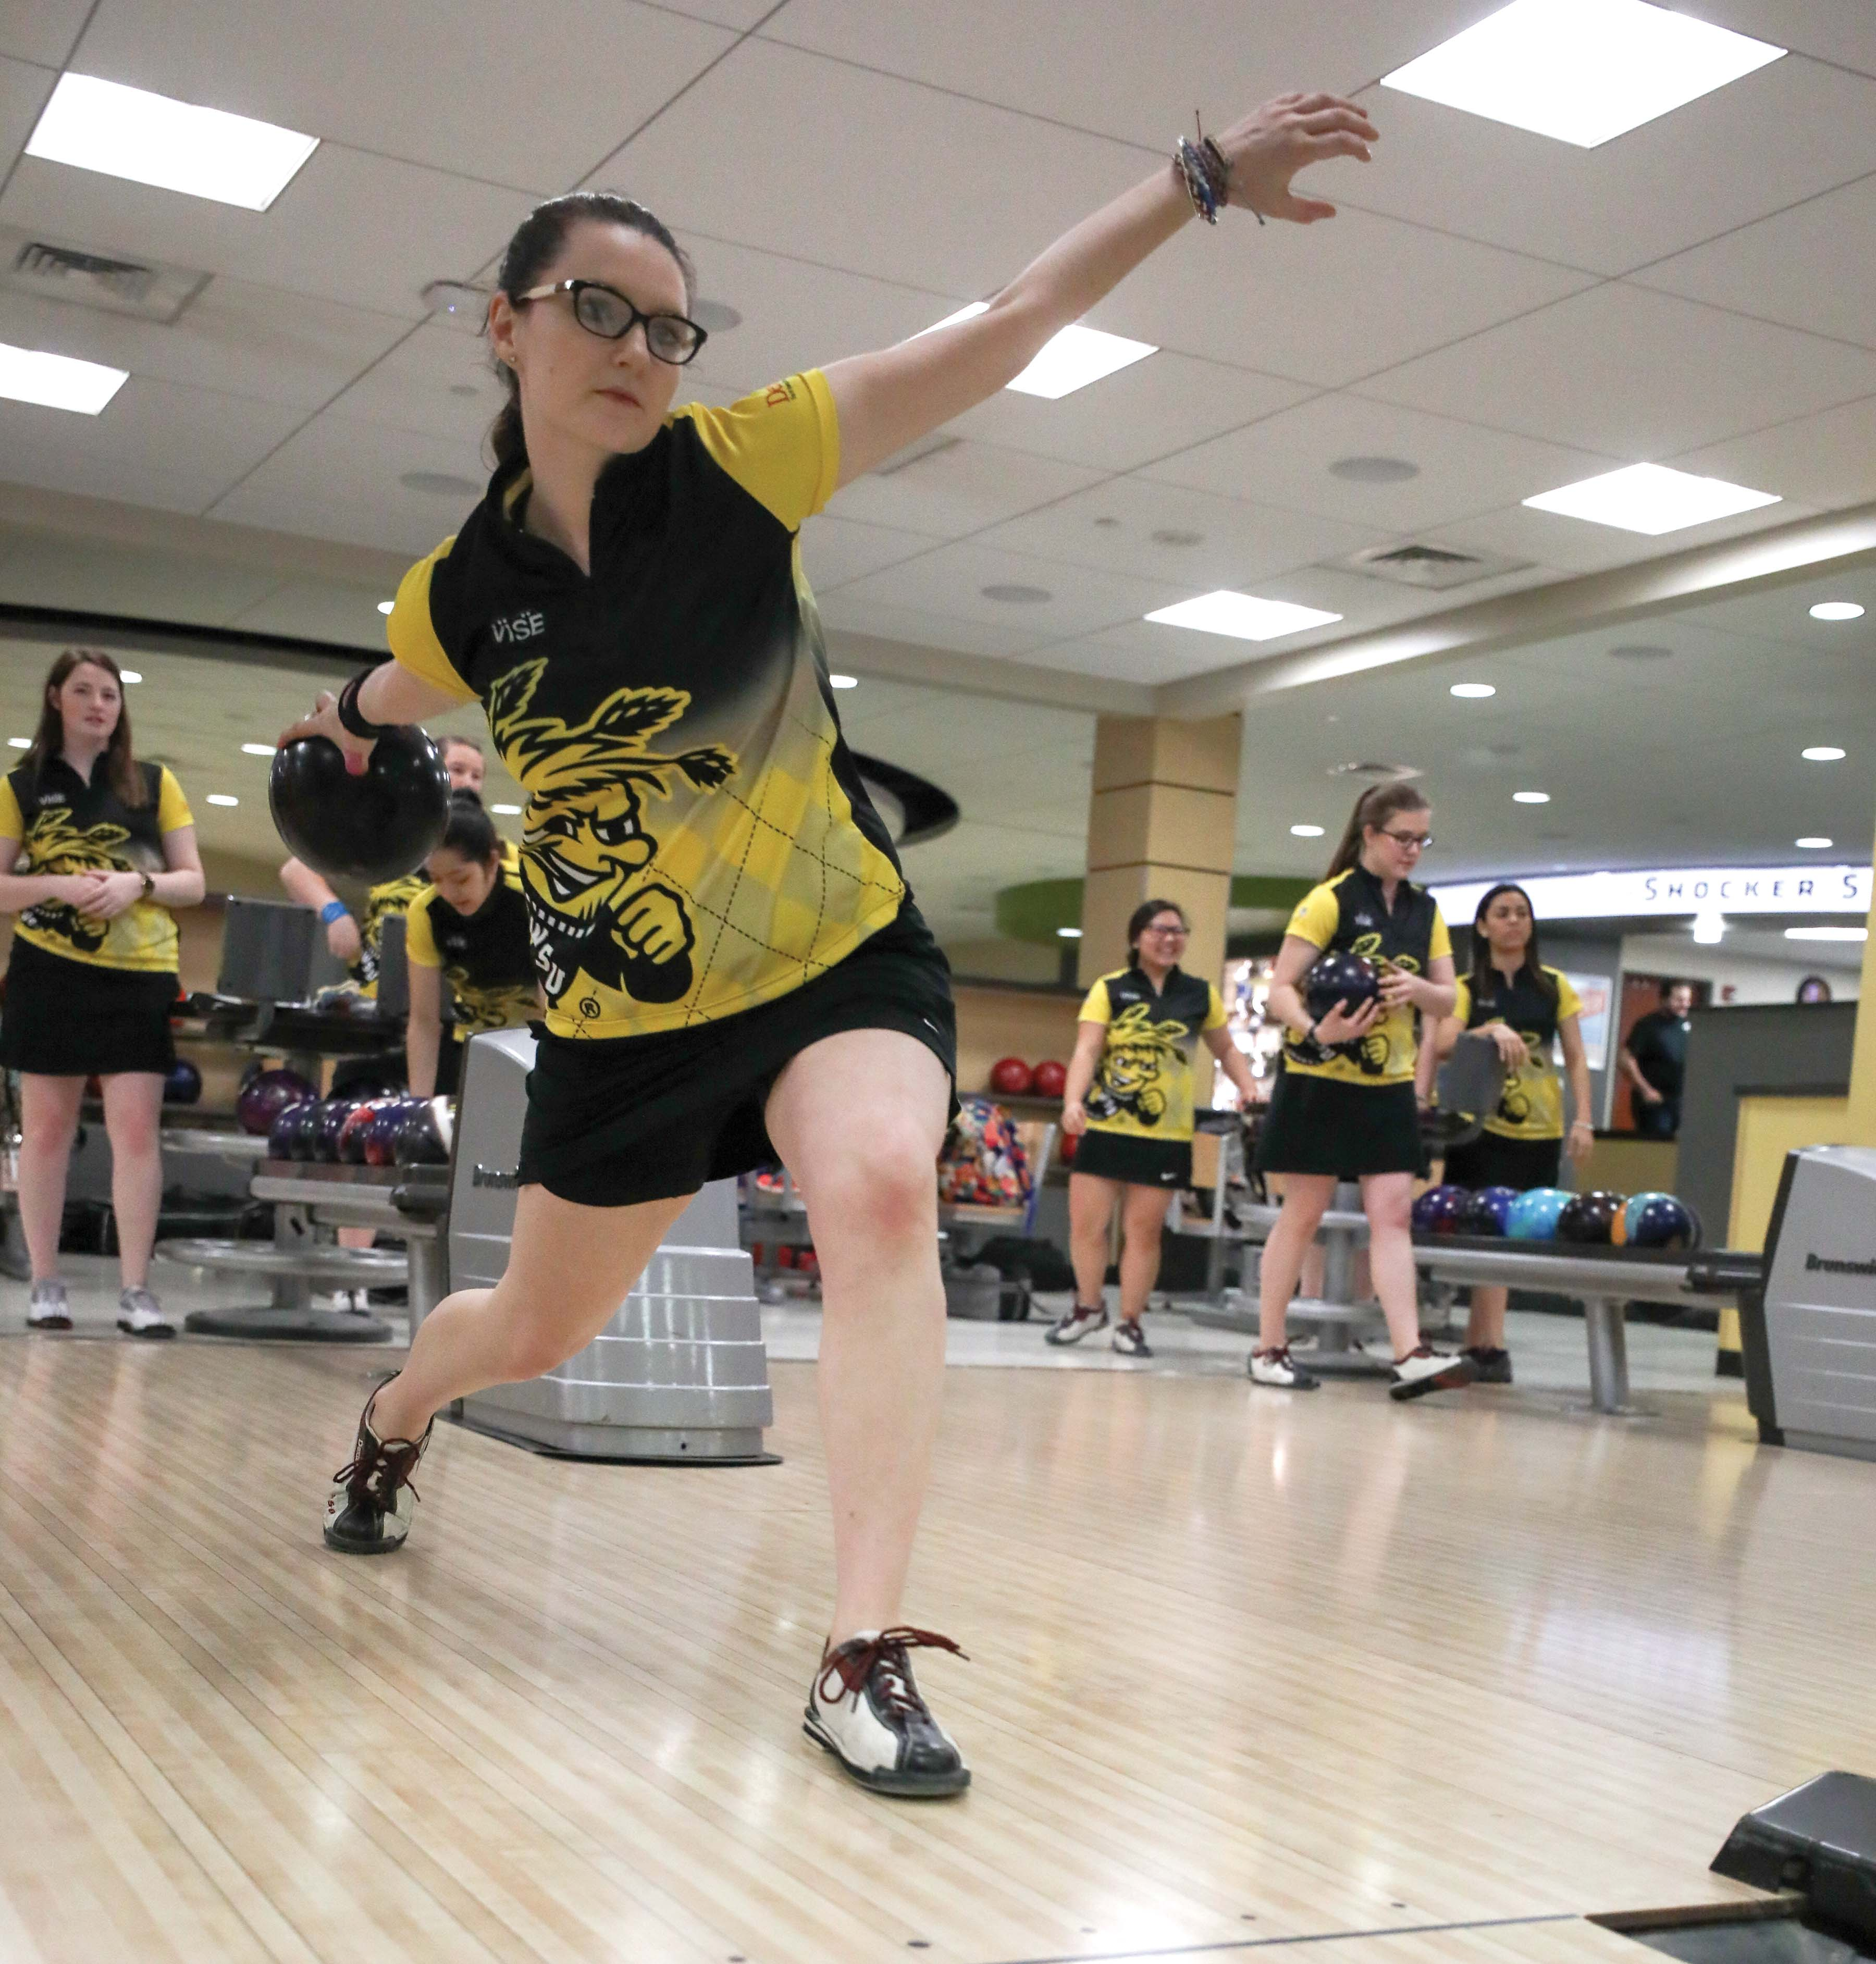 Wichita State junior Sydney Brummett bowls in the RSC during the media day prior to the Intercollegiate Bowling Championship. Brummett won the women's intercollegiate singles championship on Saturday.